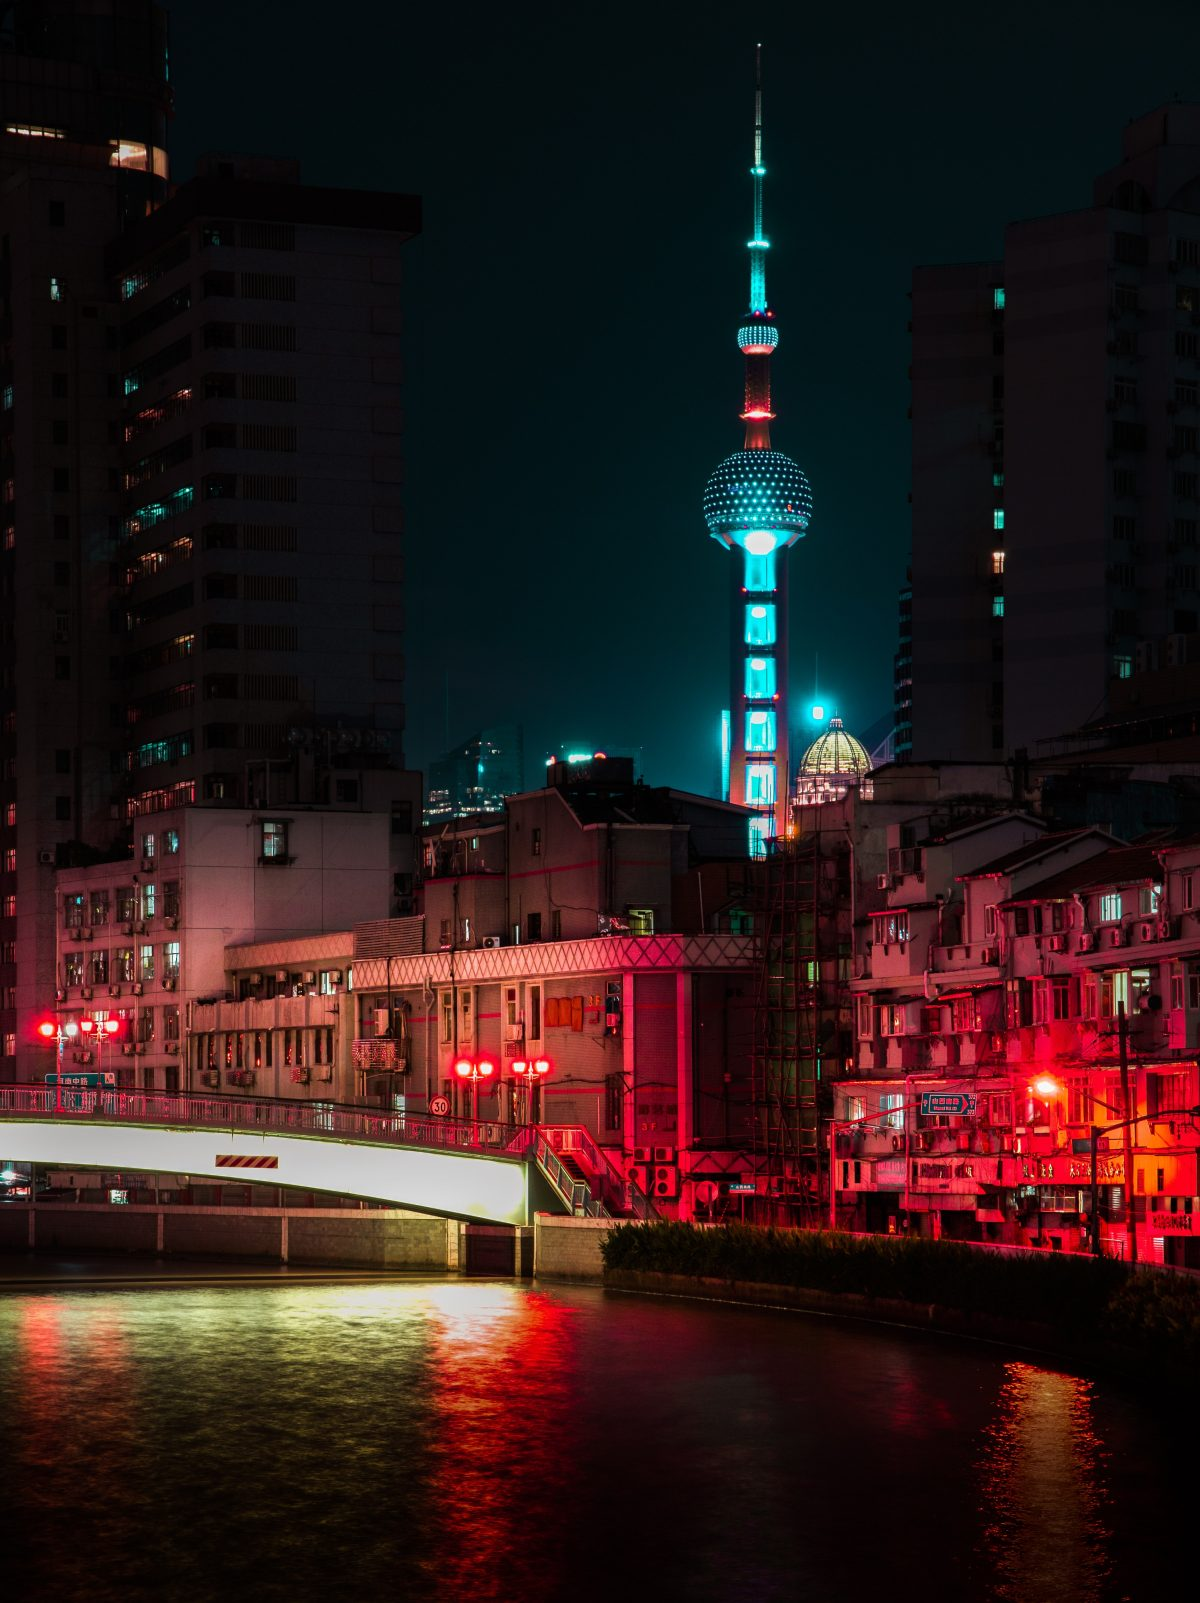 Awesome view of the illuminated Oriental Pearl Tower at night